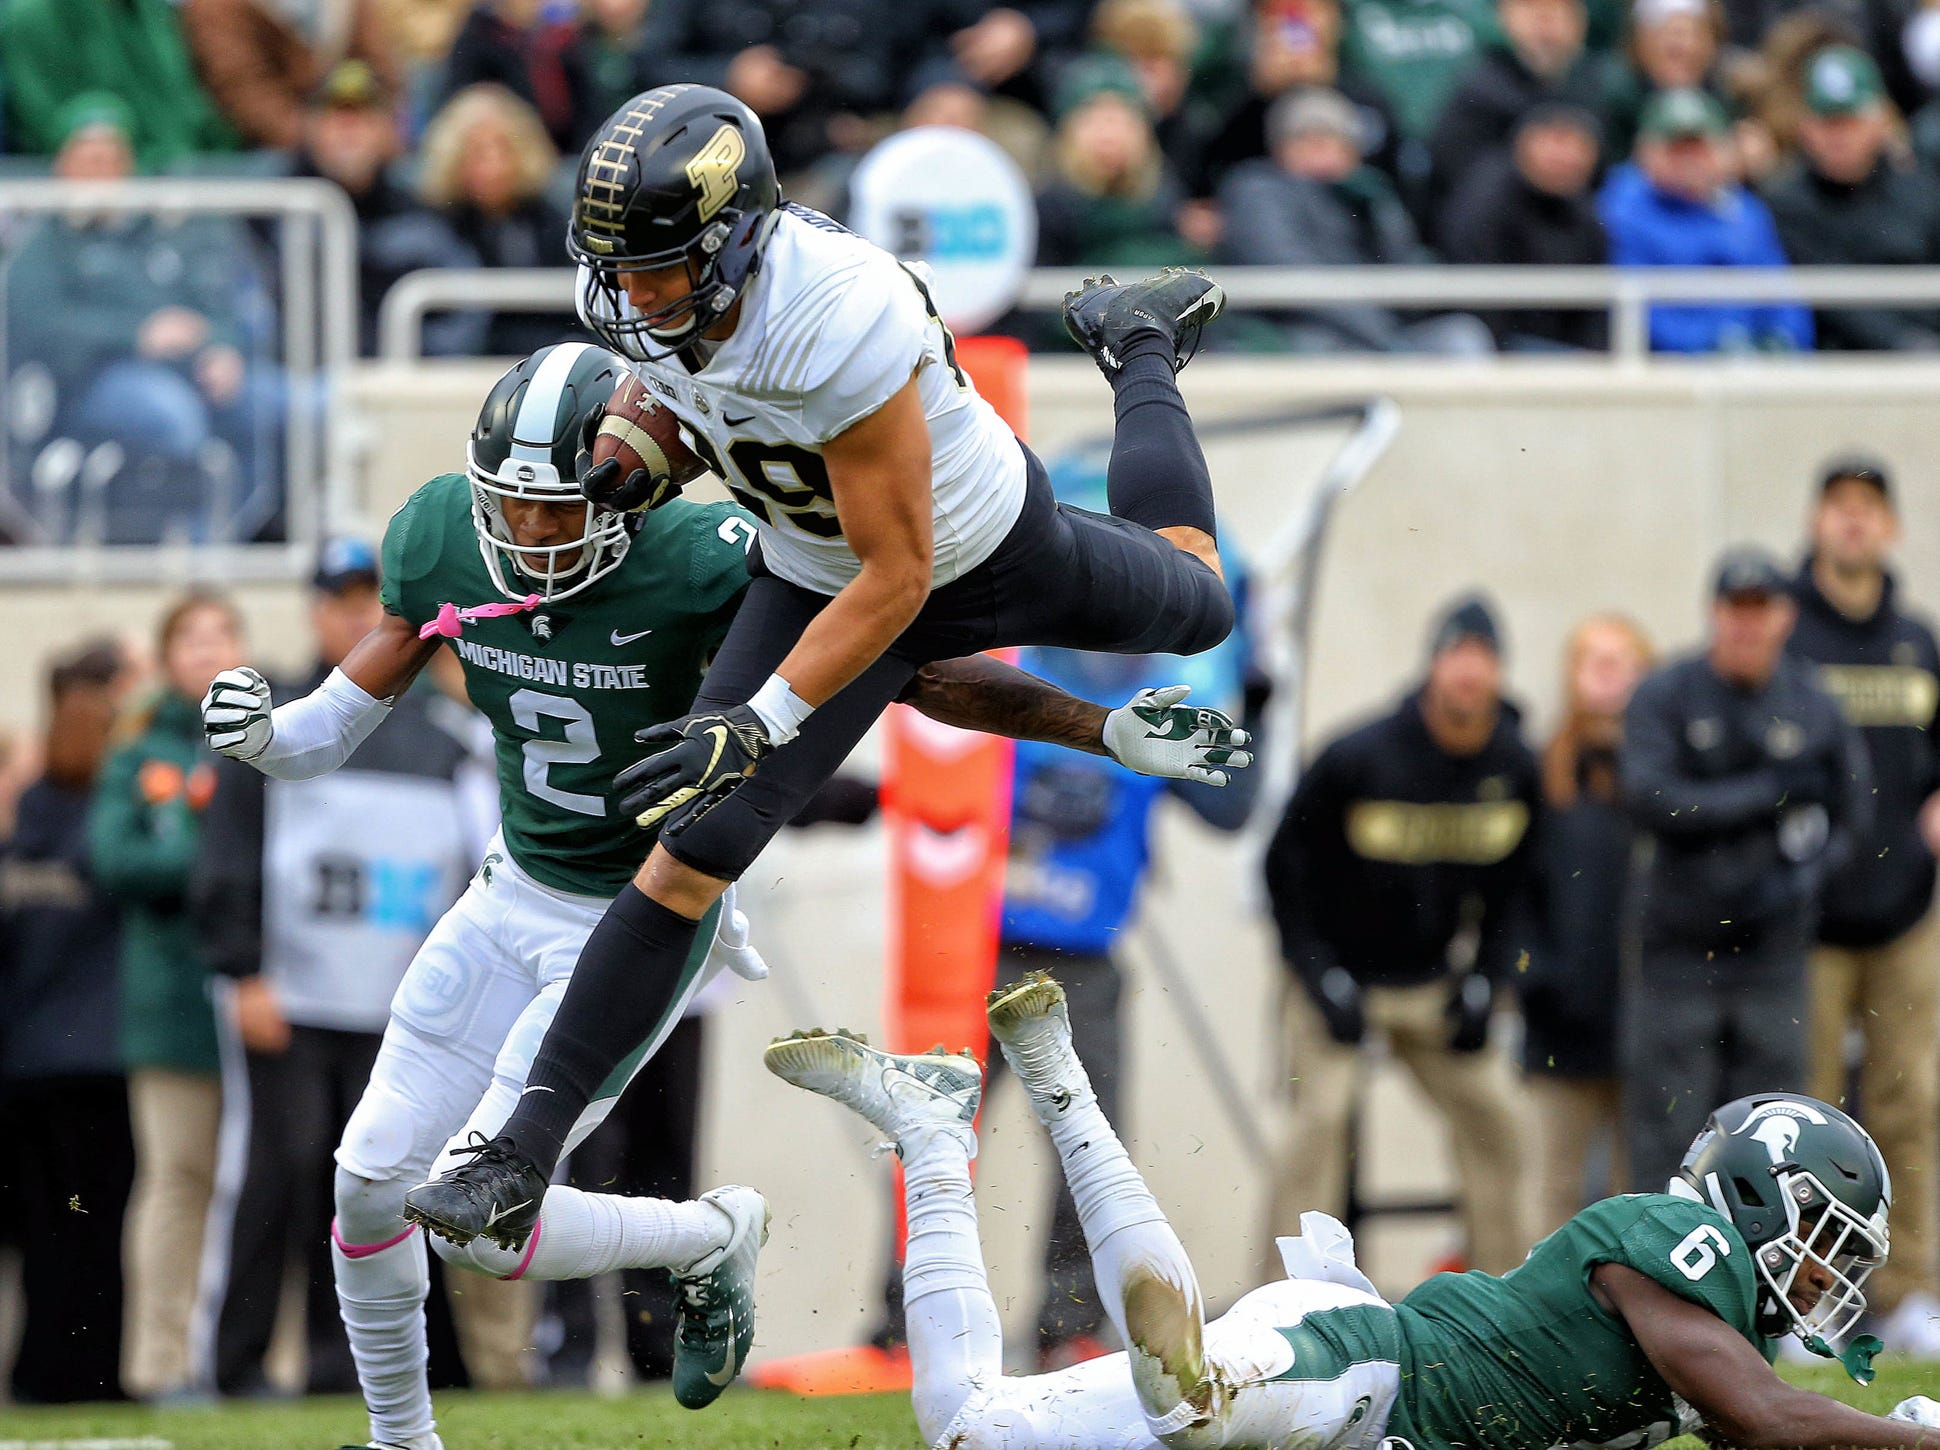 Purdue Boilermakers tight end Brycen Hopkins (89) hurdles Michigan State Spartans safety David Dowell (6) during the first quarter of a game at Spartan Stadium.